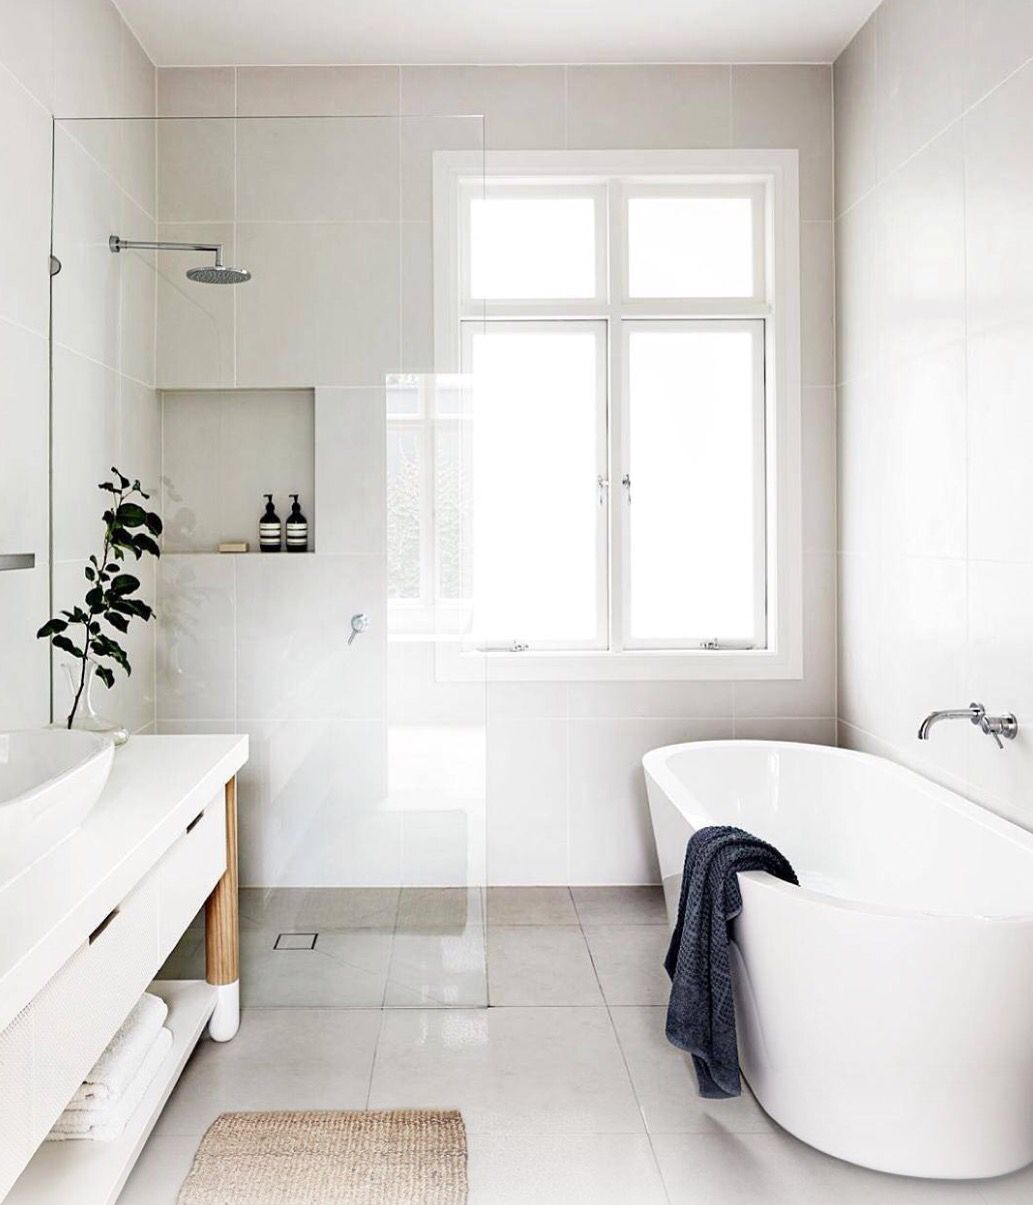 Perfect bathroom via death by elocution | in/out | Pinterest ...